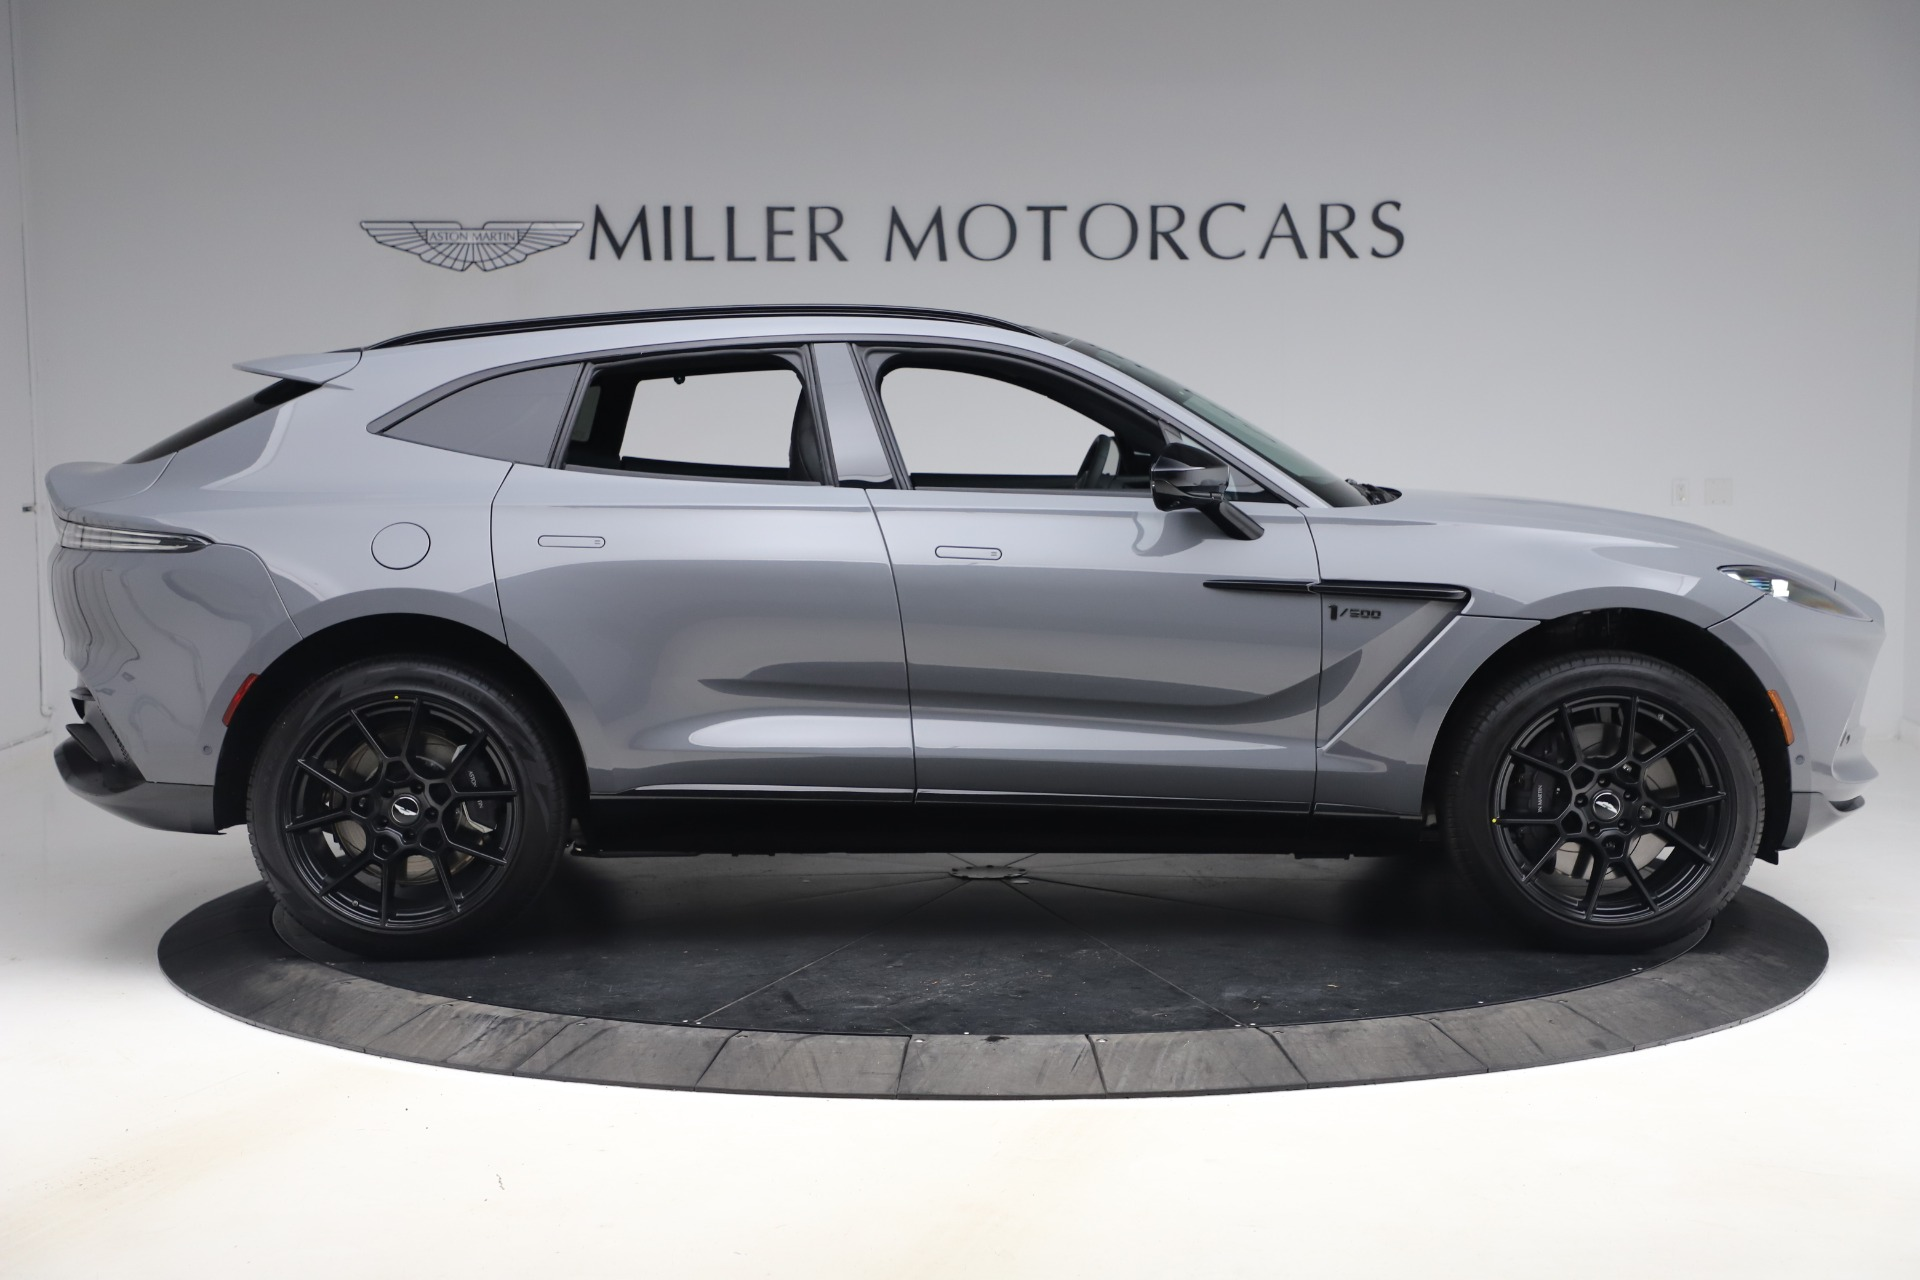 New 2021 Aston Martin Dbx Suv For Sale 194 486 Miller Motorcars Stock A1535